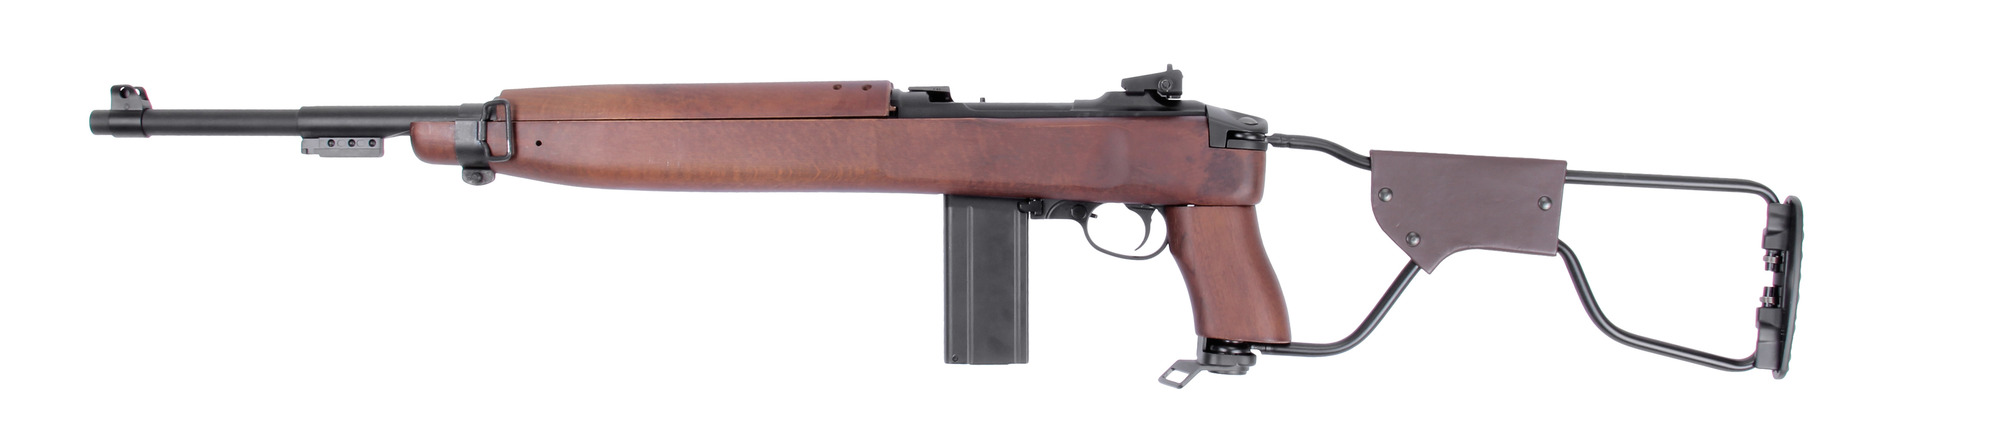 LE6030-Réplique M1A1 Paratrooper Co2 - KING ARMS - LE6030C